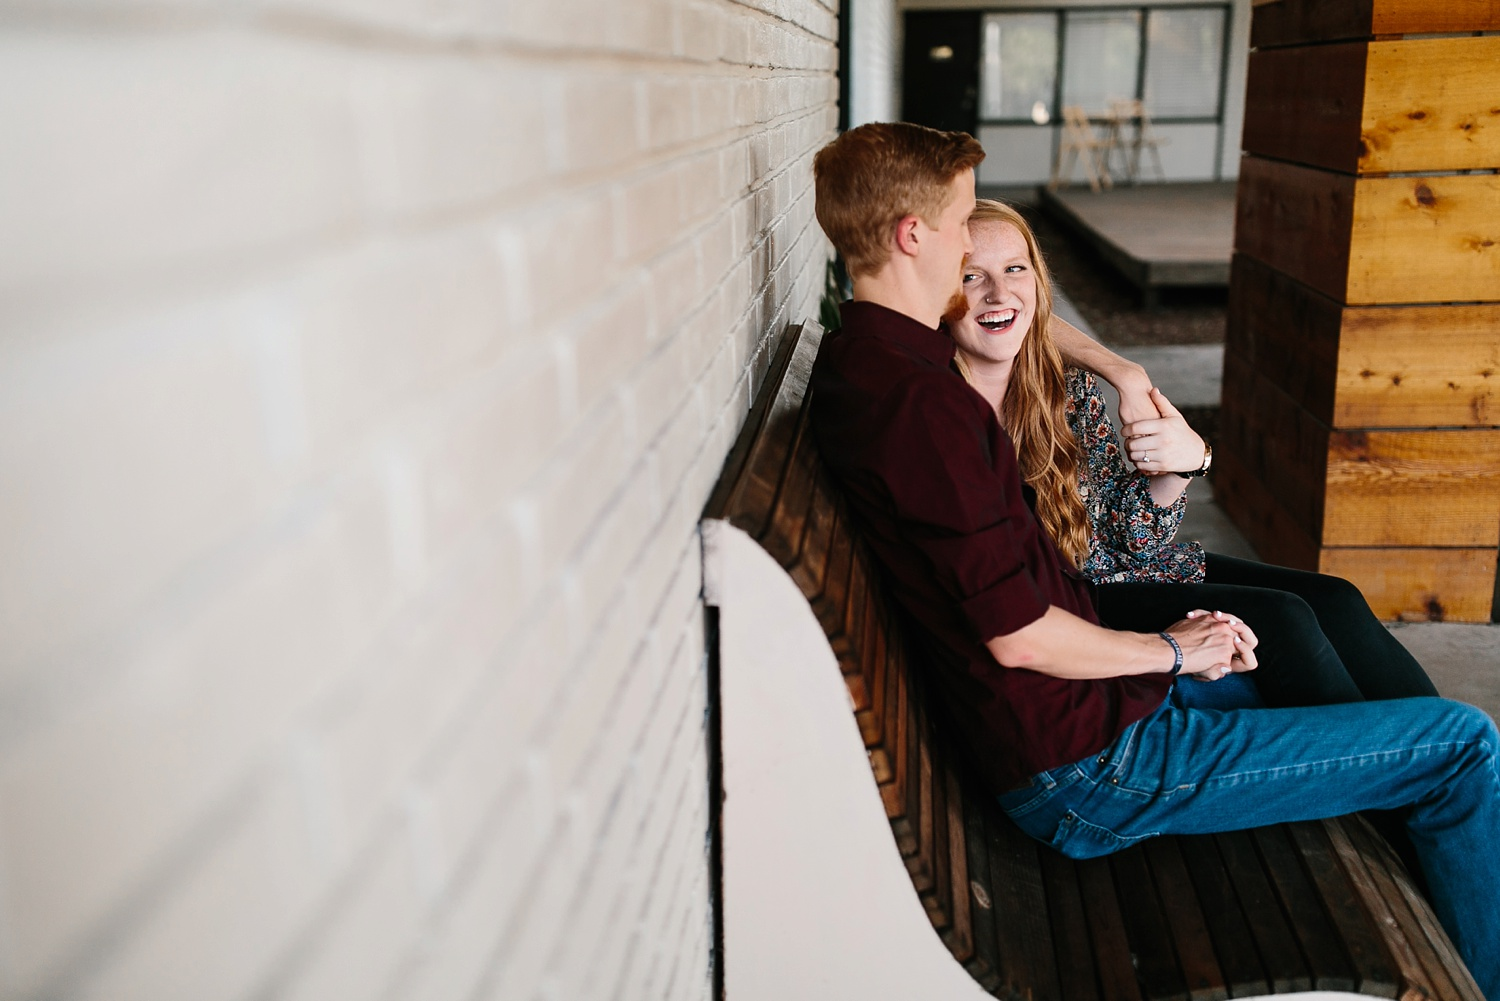 Kayla + Alex _ a joyful and loving engagement shoot in Waco, Texas by North Texas Wedding Photographer Rachel Meagan Photography _10